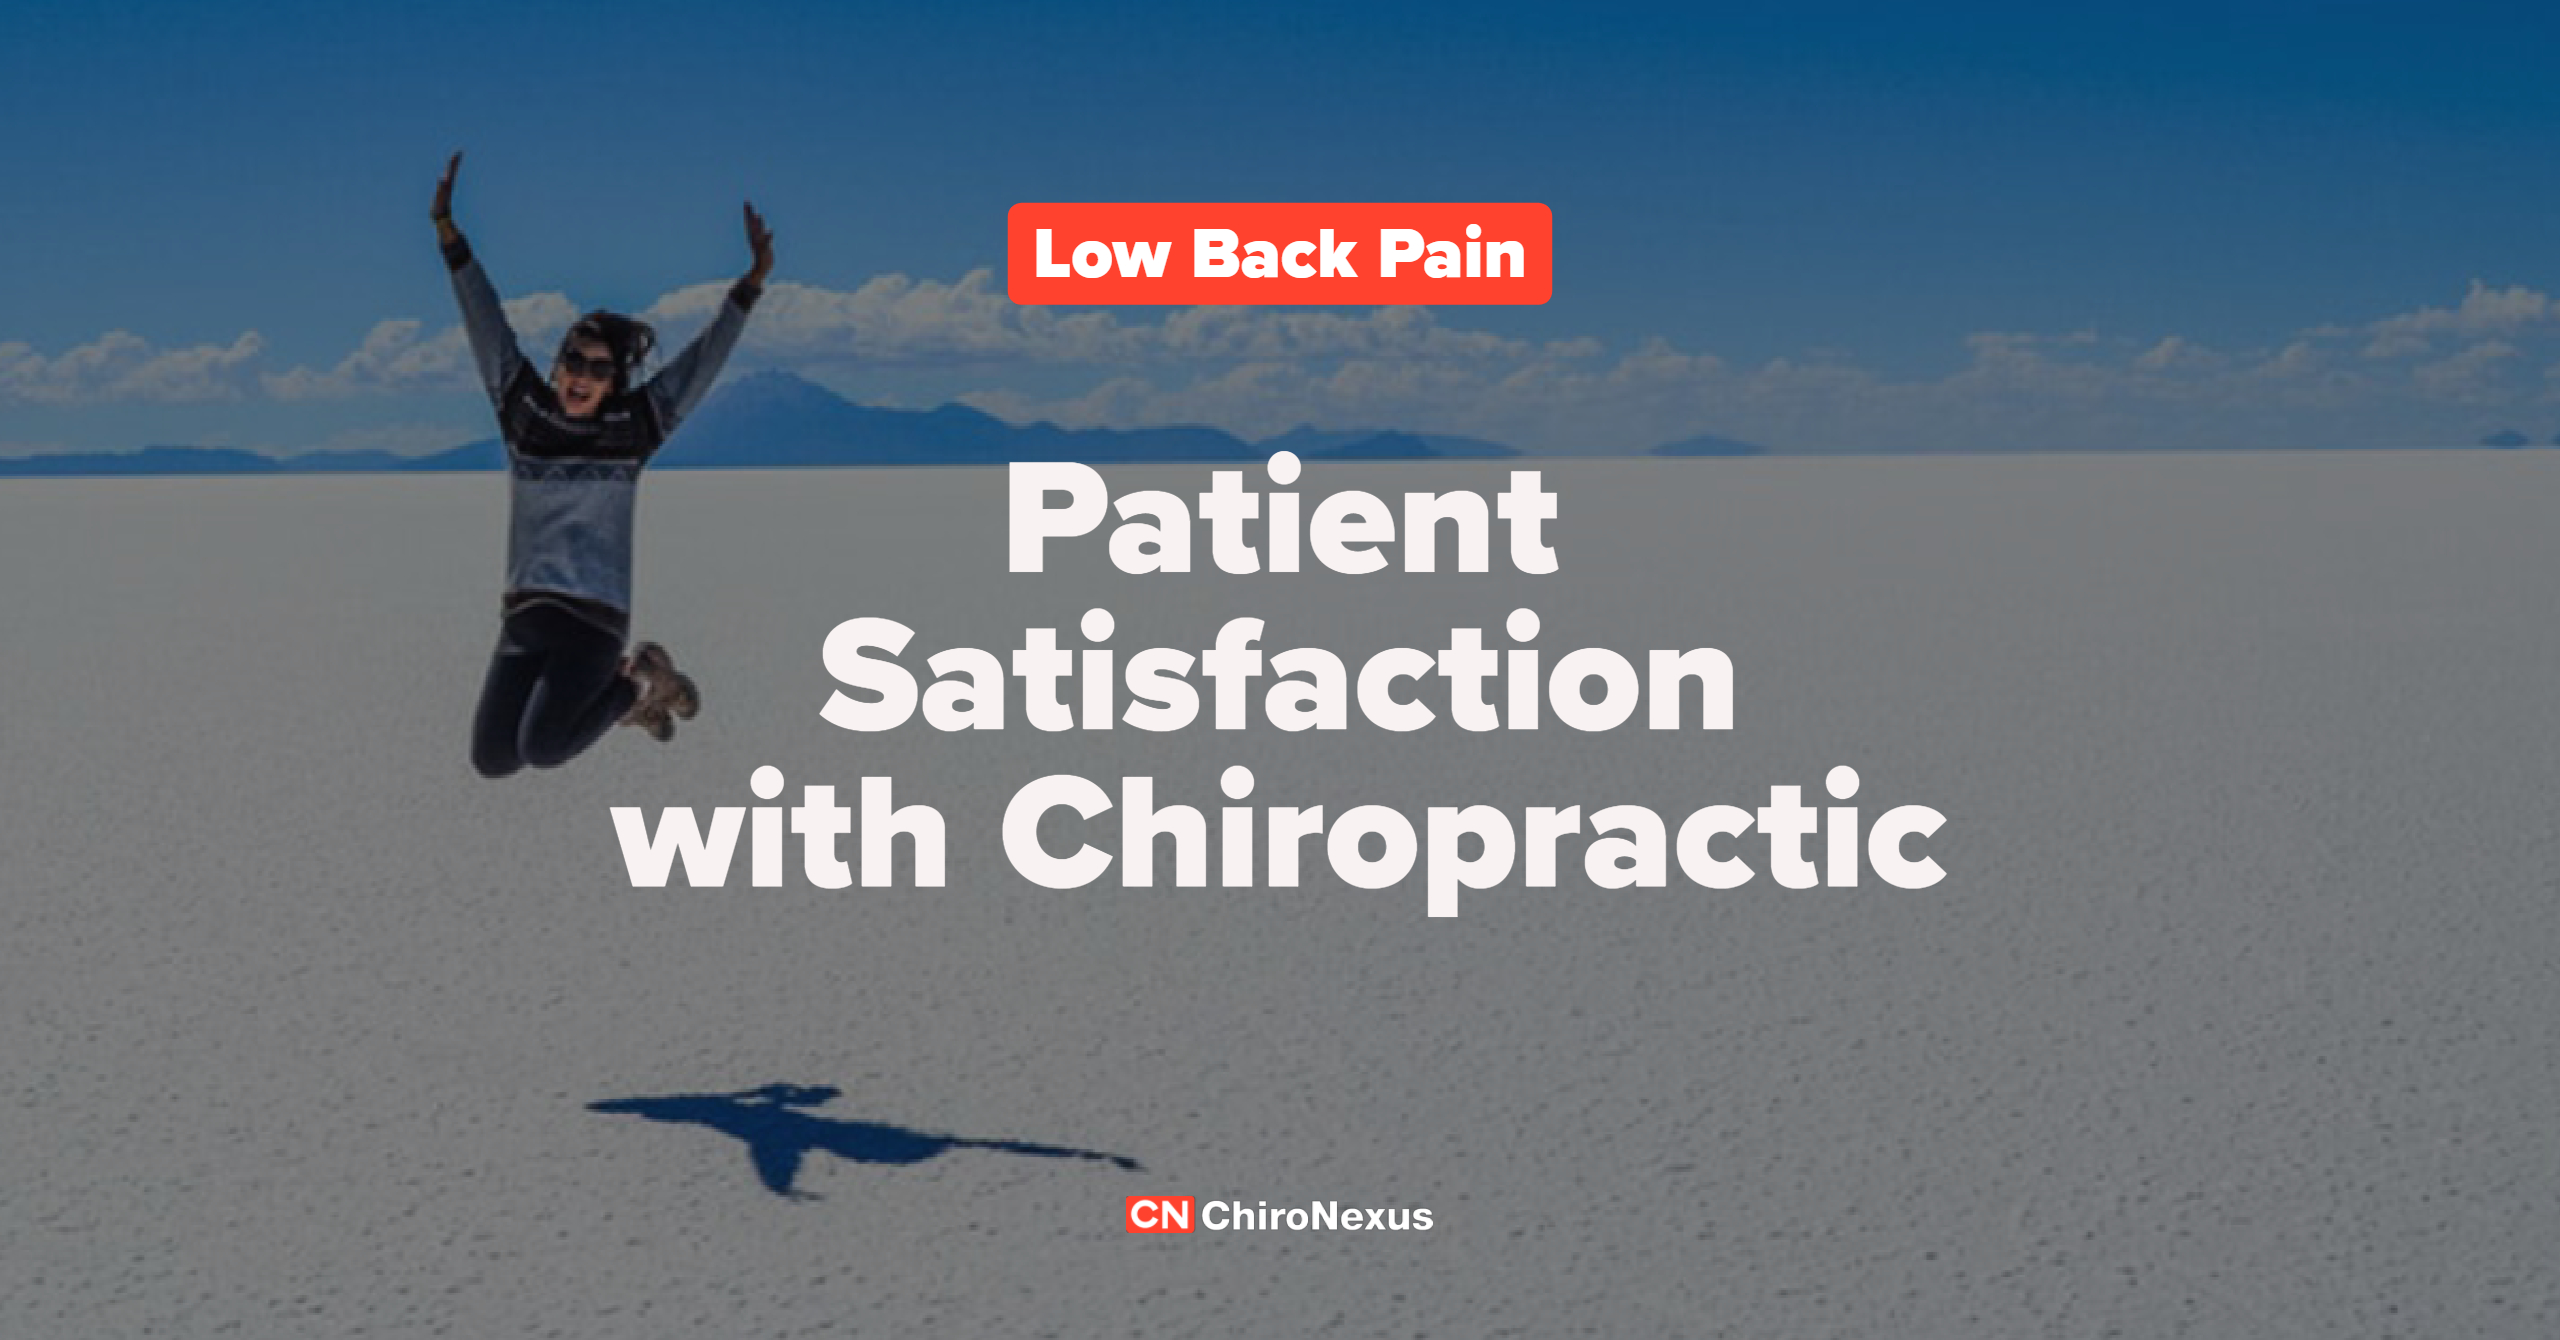 Low Back Pain: Patient Satisfaction with Chiropractic